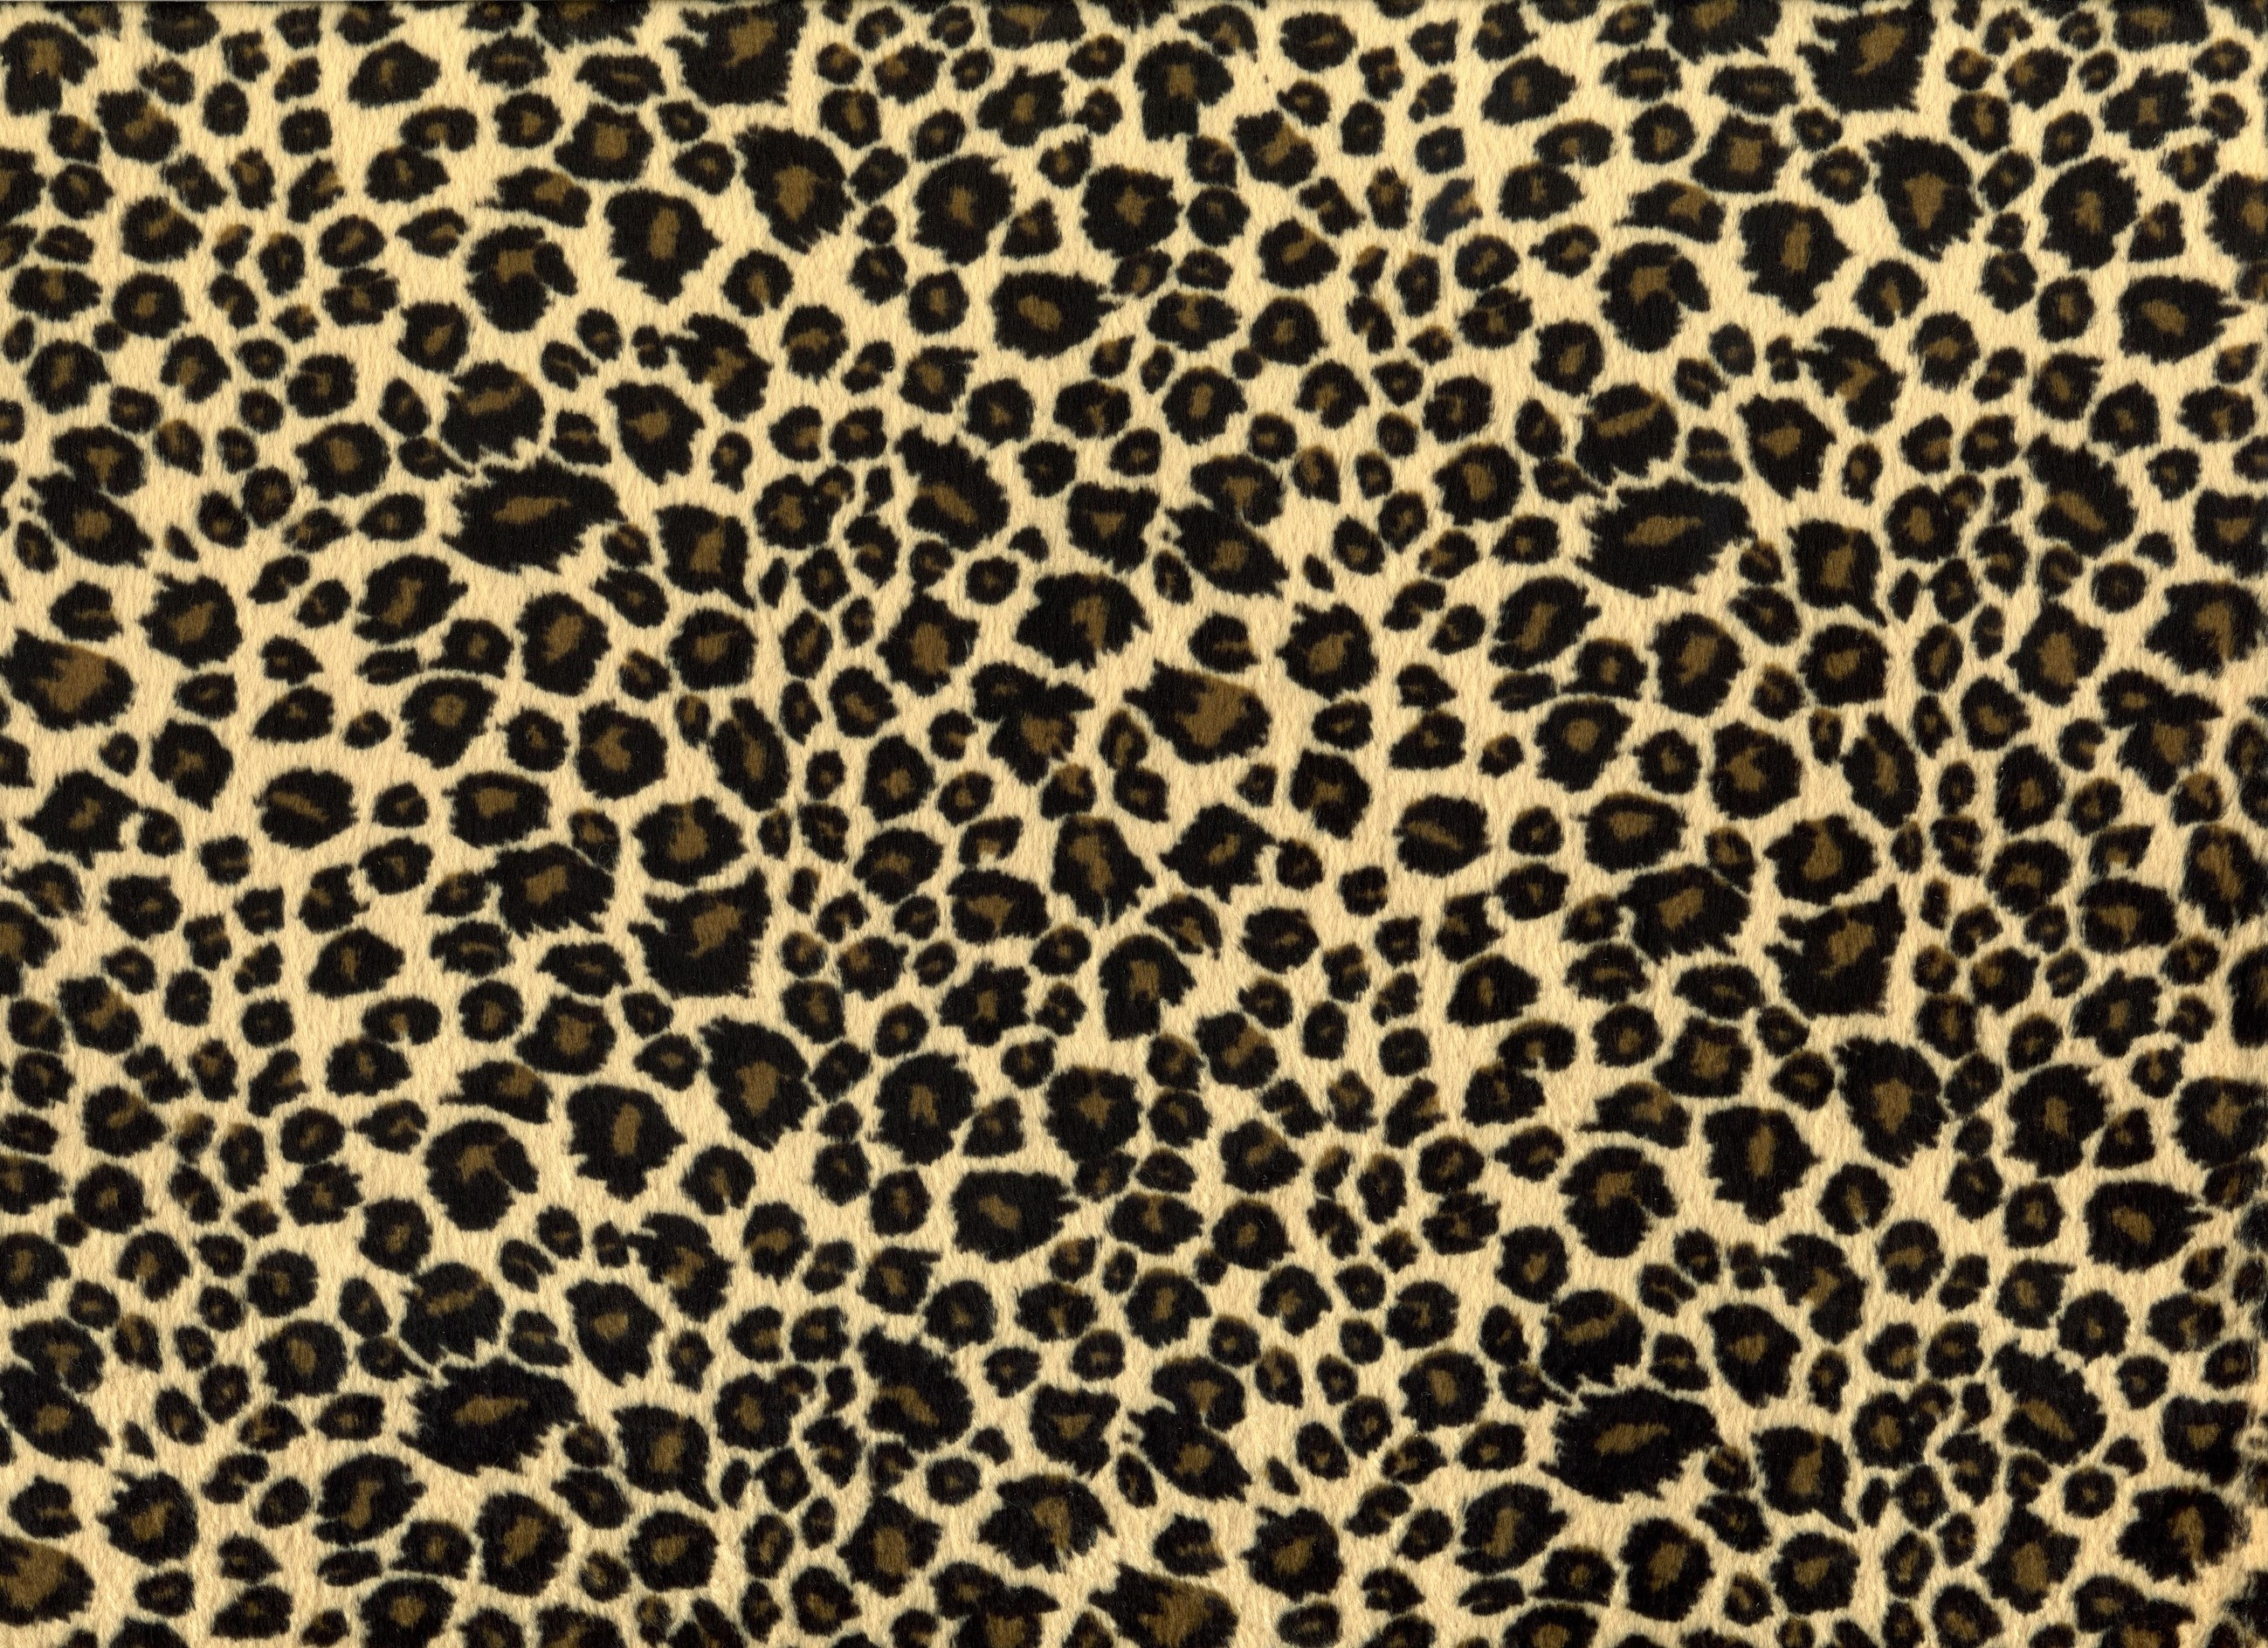 Leopard background tumblr for Leopard print wallpaper